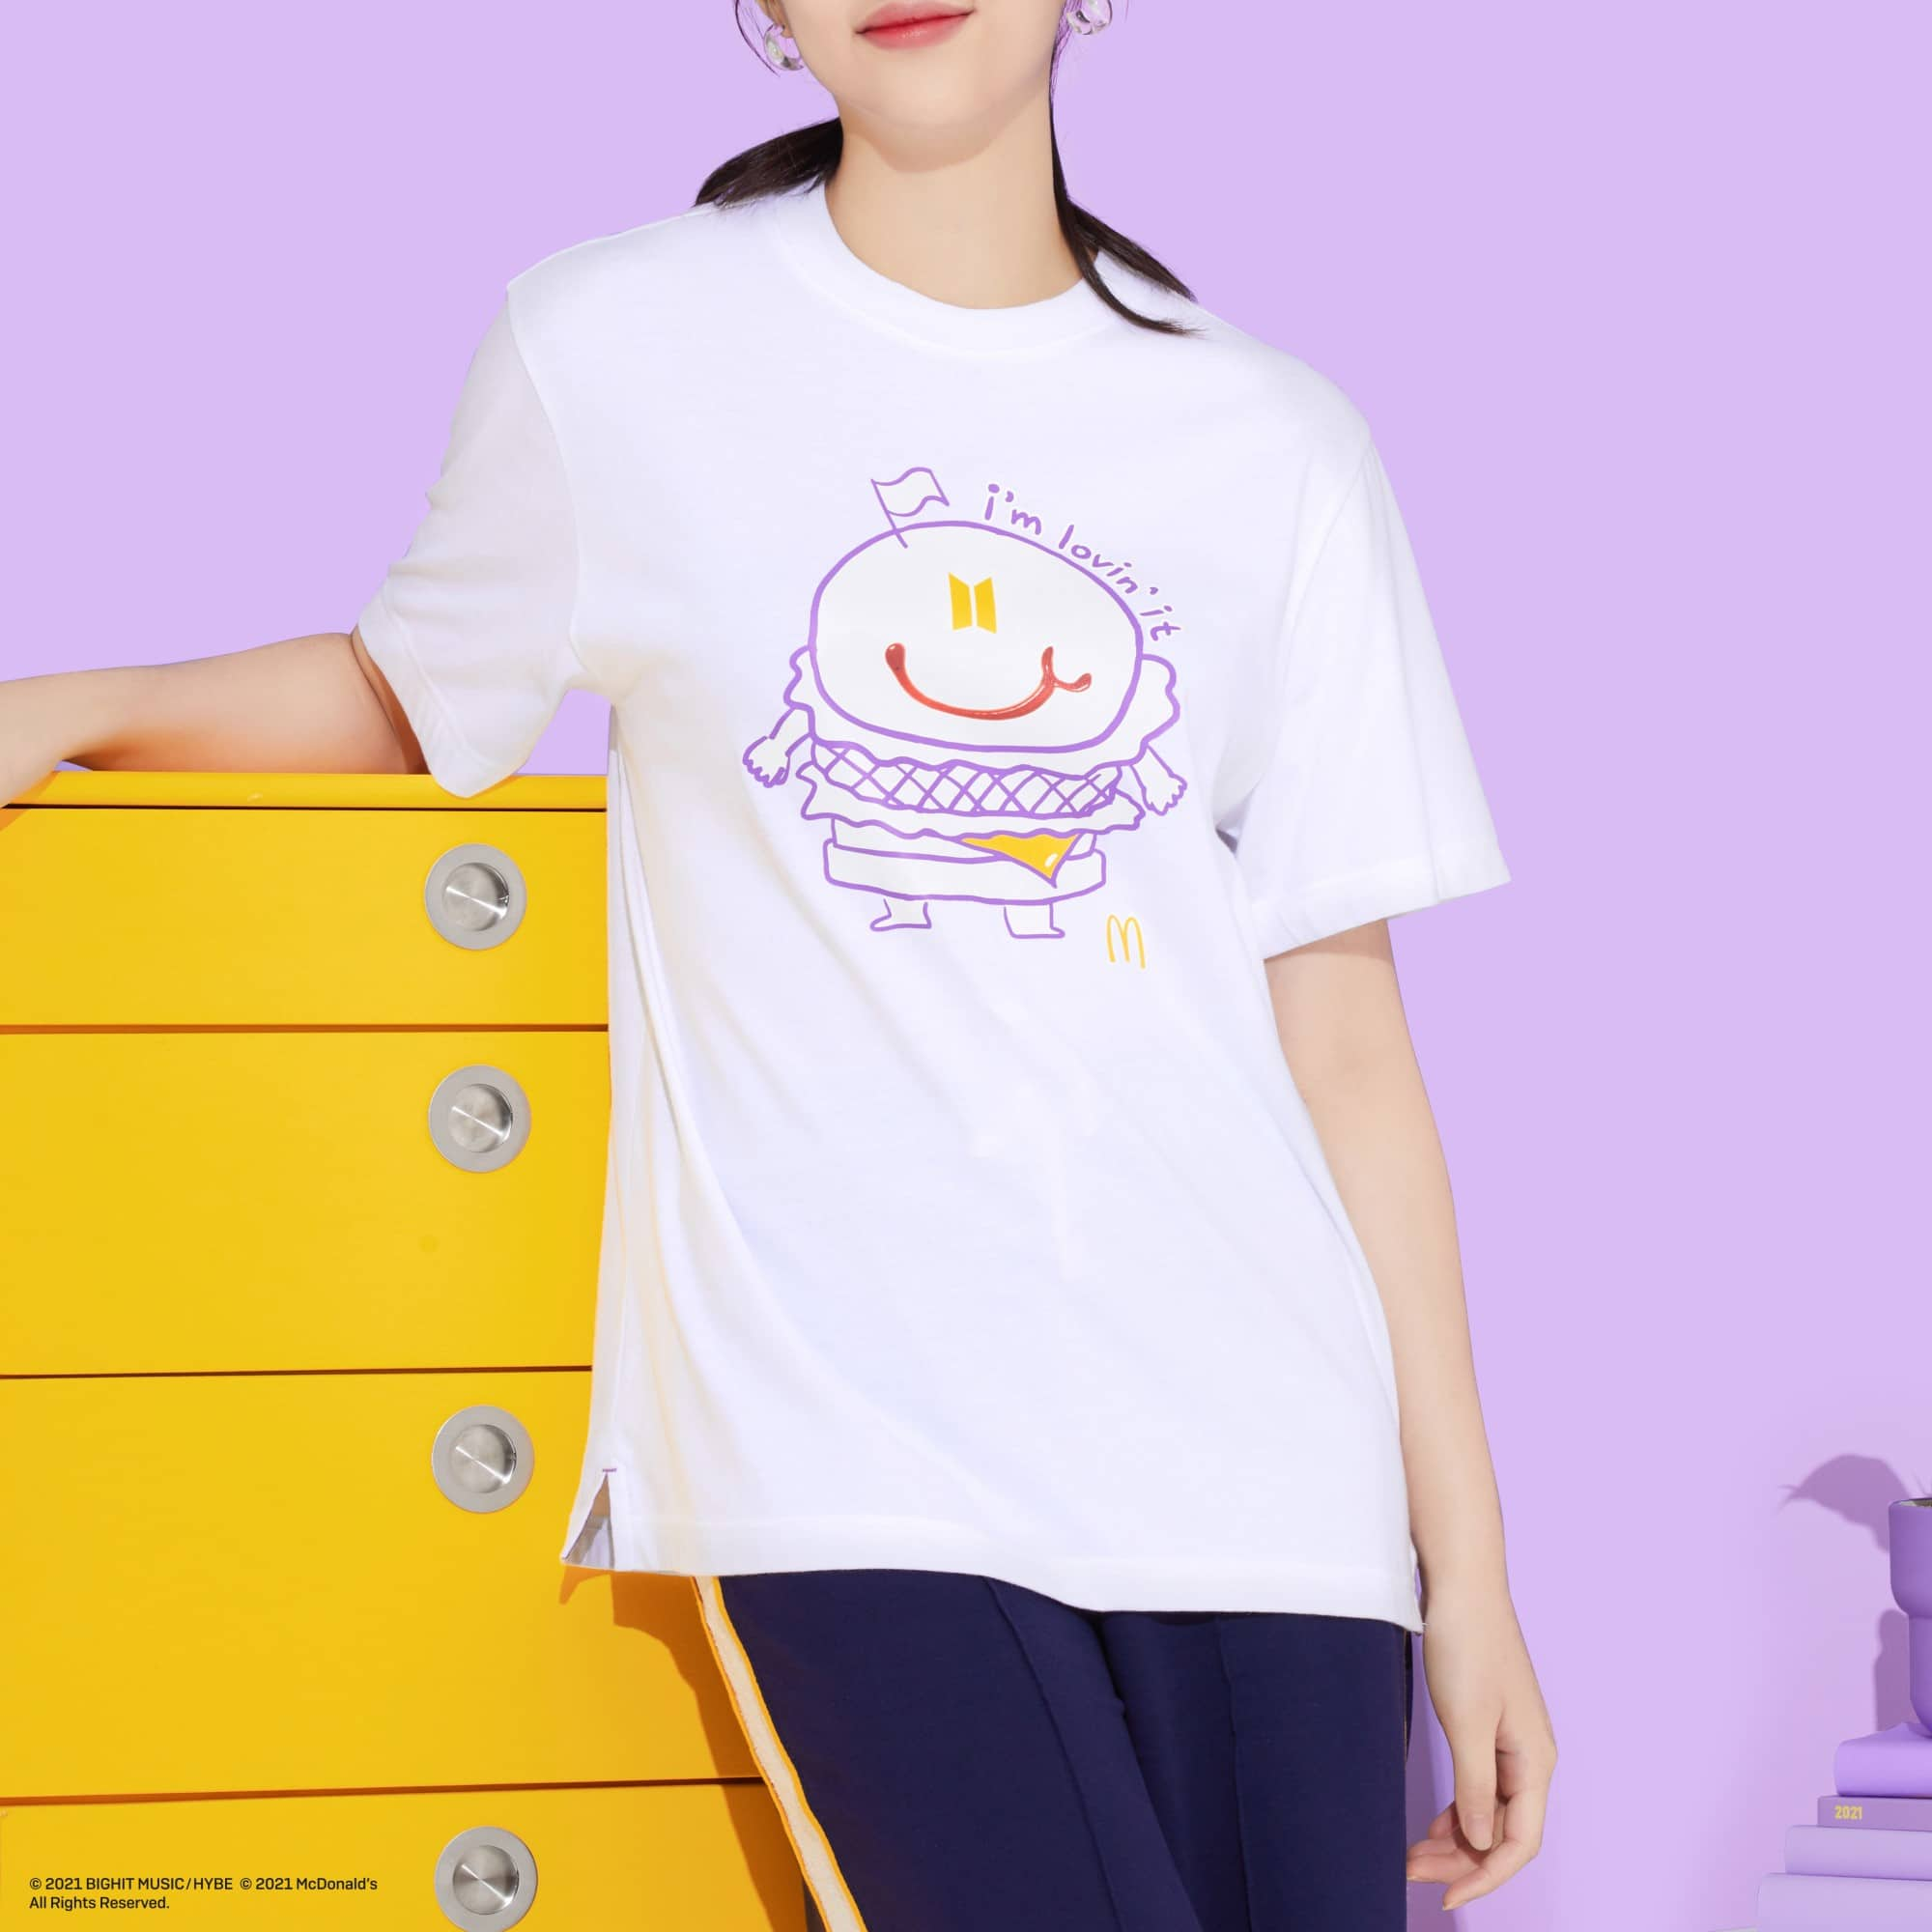 BTS x McDonald's collaboration continues with two new merch lines 14